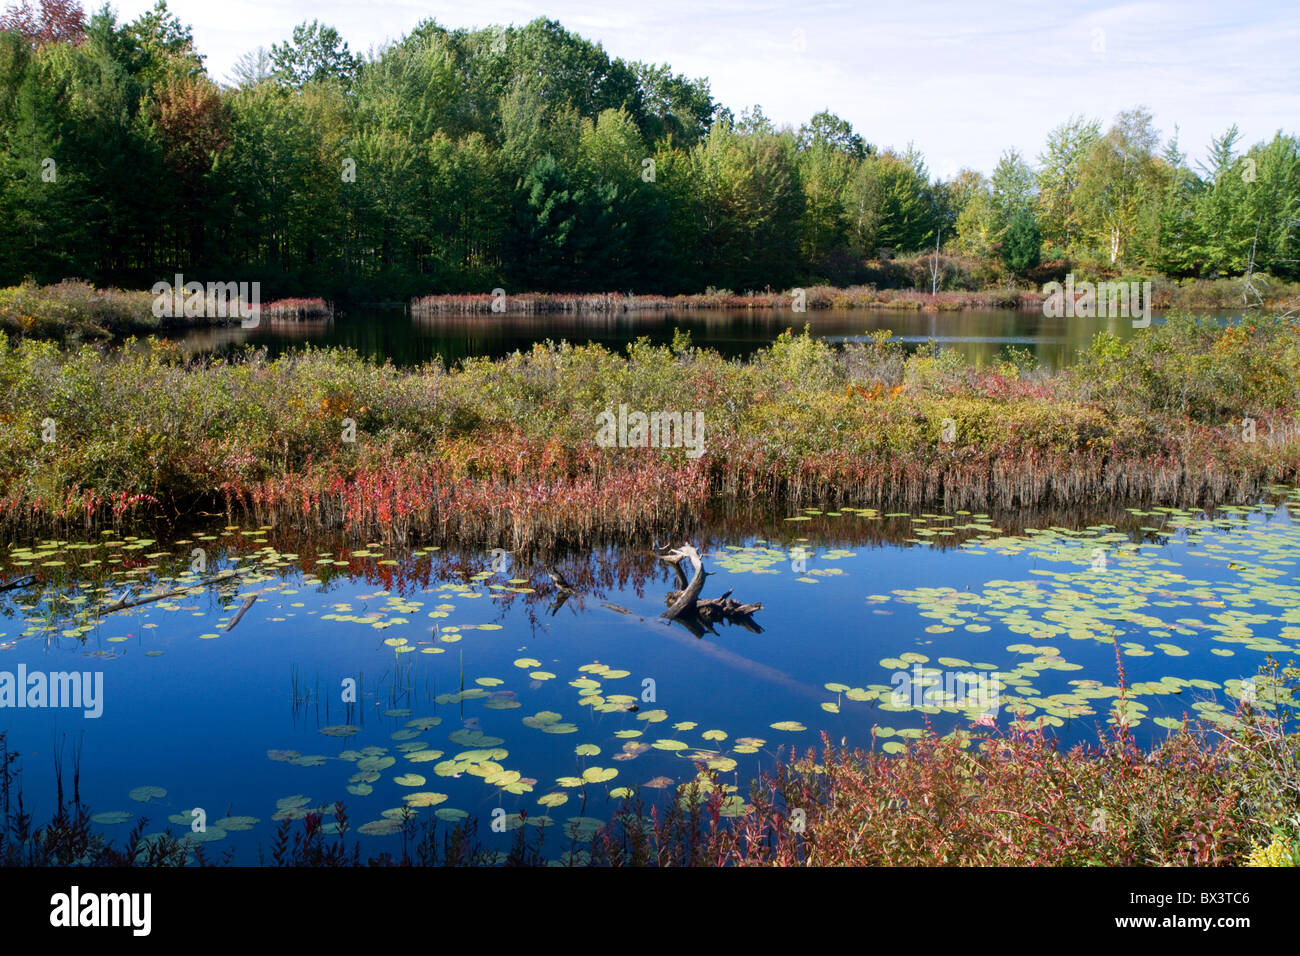 Wetland habitat with aquatic vegetation near Cadillac, Michigan, USA. - Stock Image